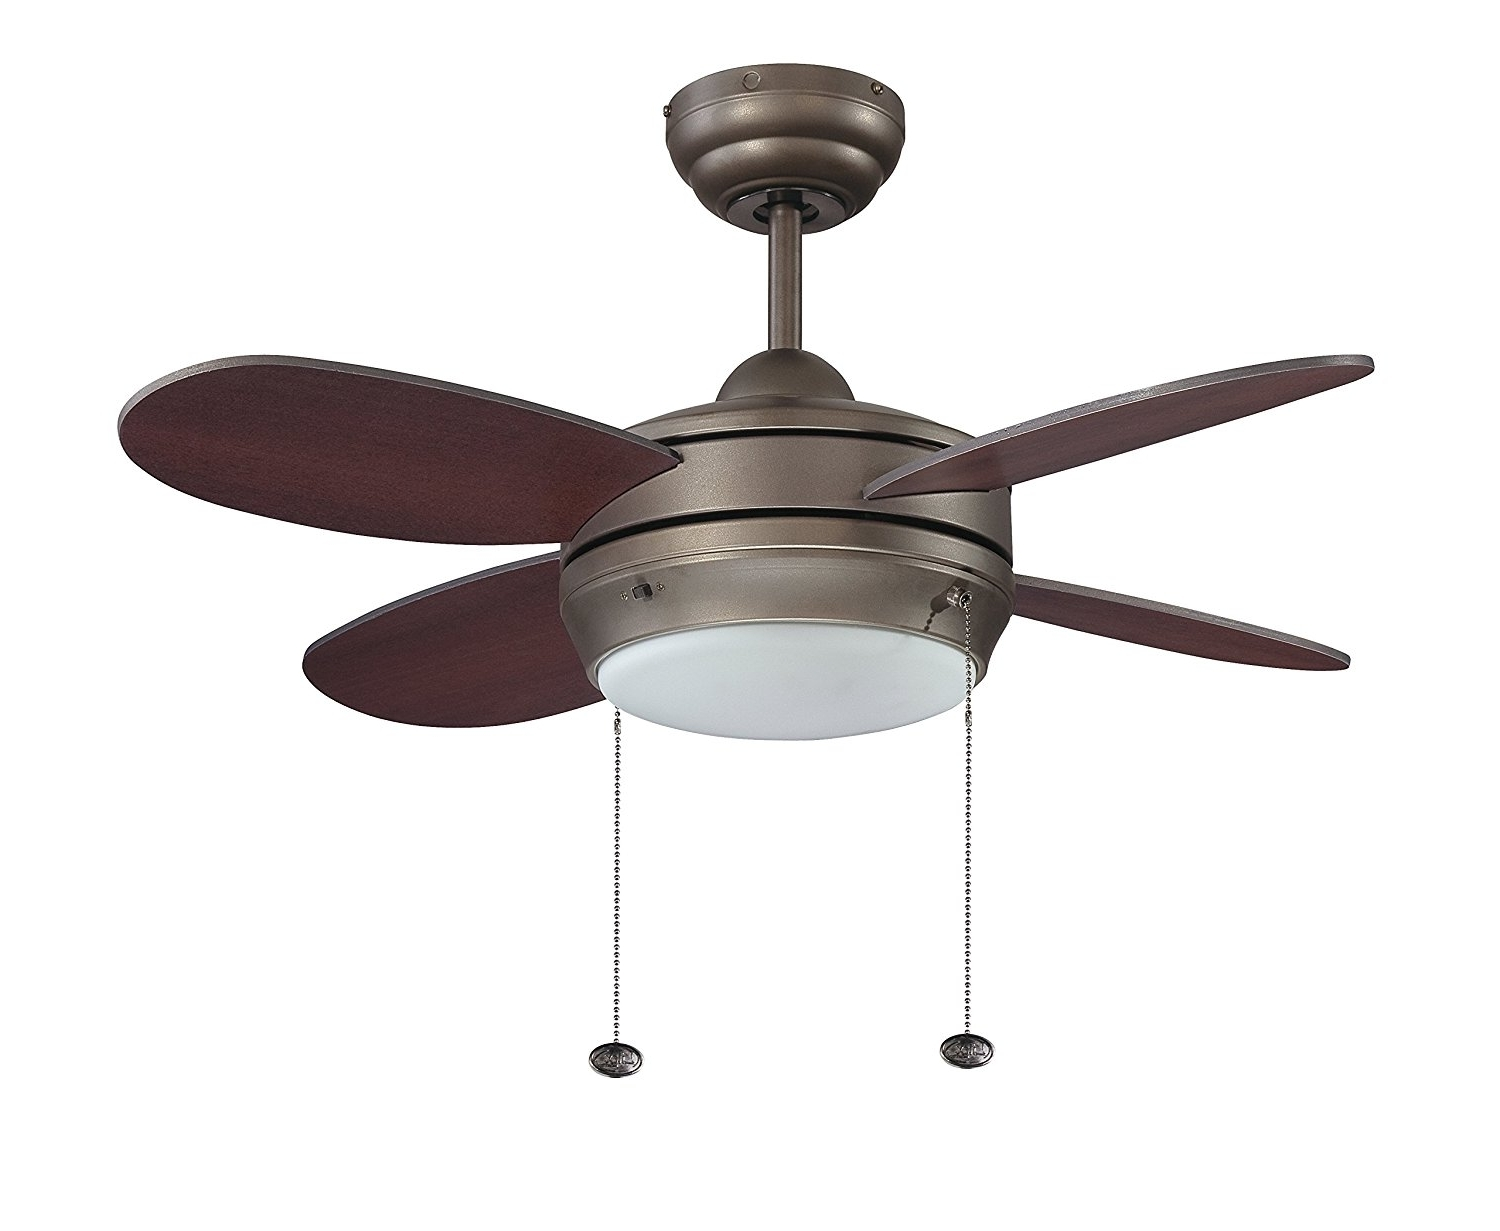 24 Inch Outdoor Ceiling Fans With Light With Regard To Latest 24 Inch Ceiling Fan With Light Lowes Ceiling Lights Rustic Ceiling (Gallery 15 of 20)